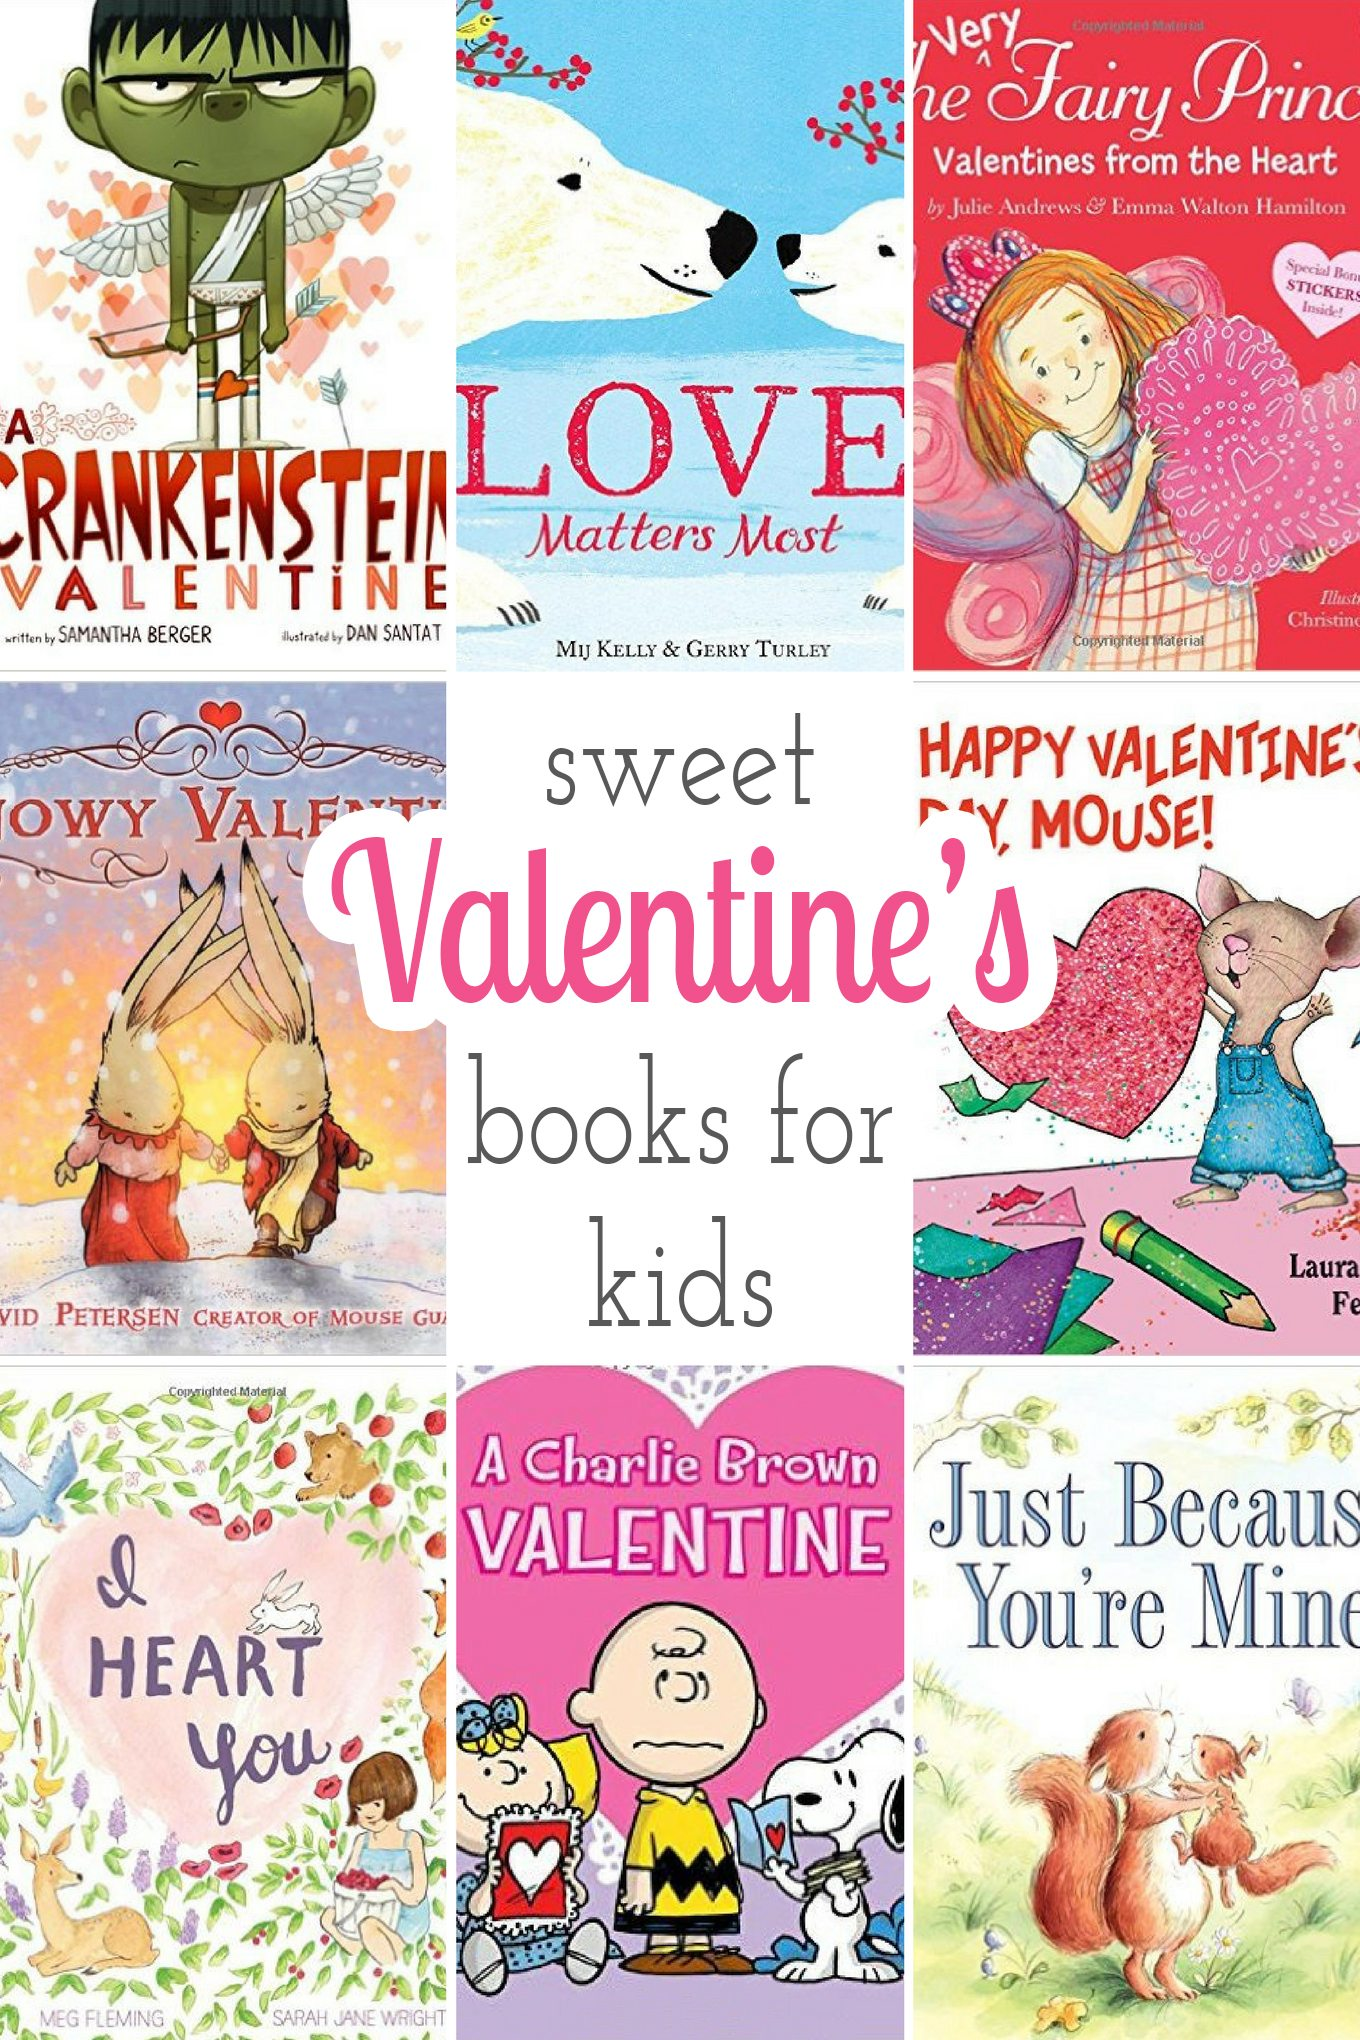 Sweet Books for Valentine's Day